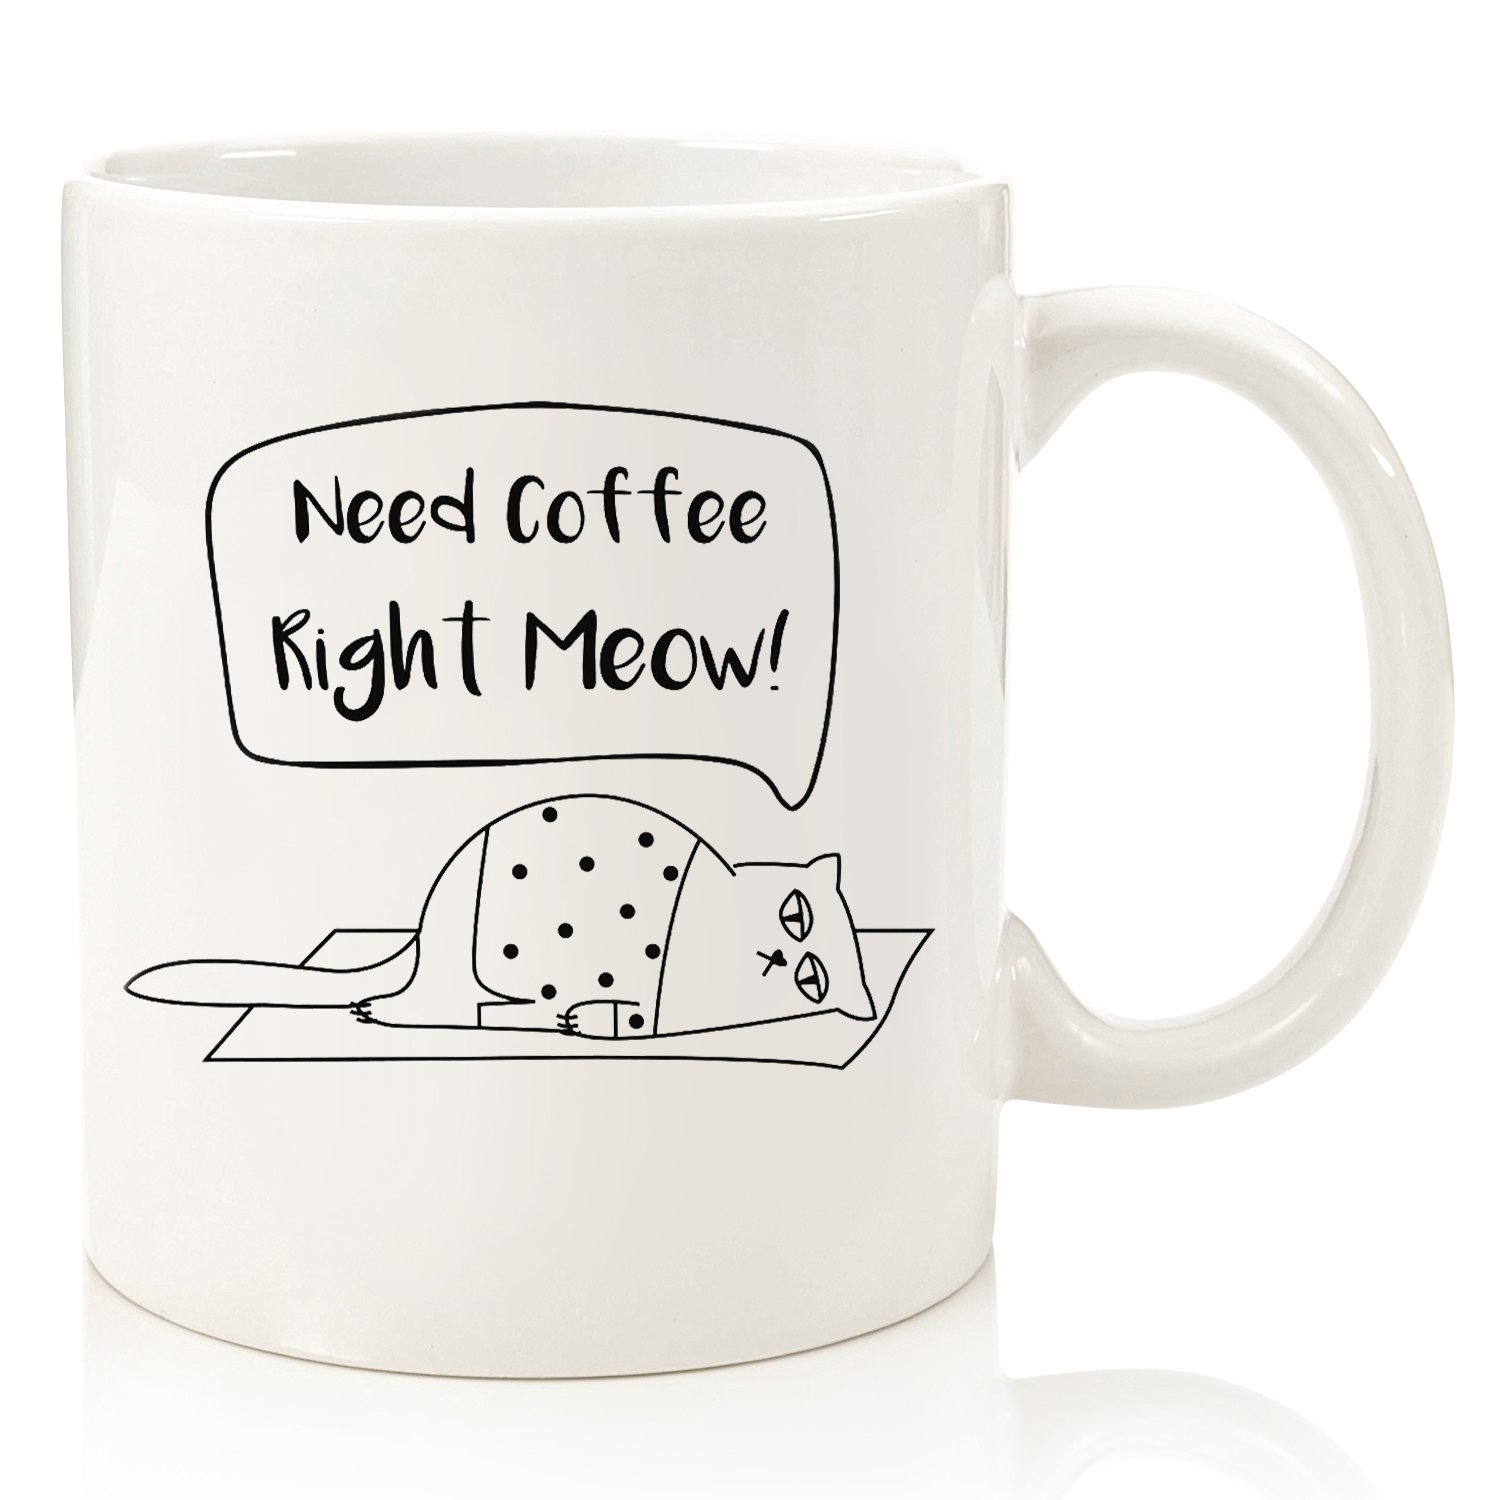 Need Coffee Right Meow Funny Cat Coffee Mug - Best Birthday Gifts For Men, Women, Dad, Mom - Unique Mothers Day Present Idea - Fun Cup For Him, Her, Boyfriend, Girlfriend, Office or Coworkers - 11 oz